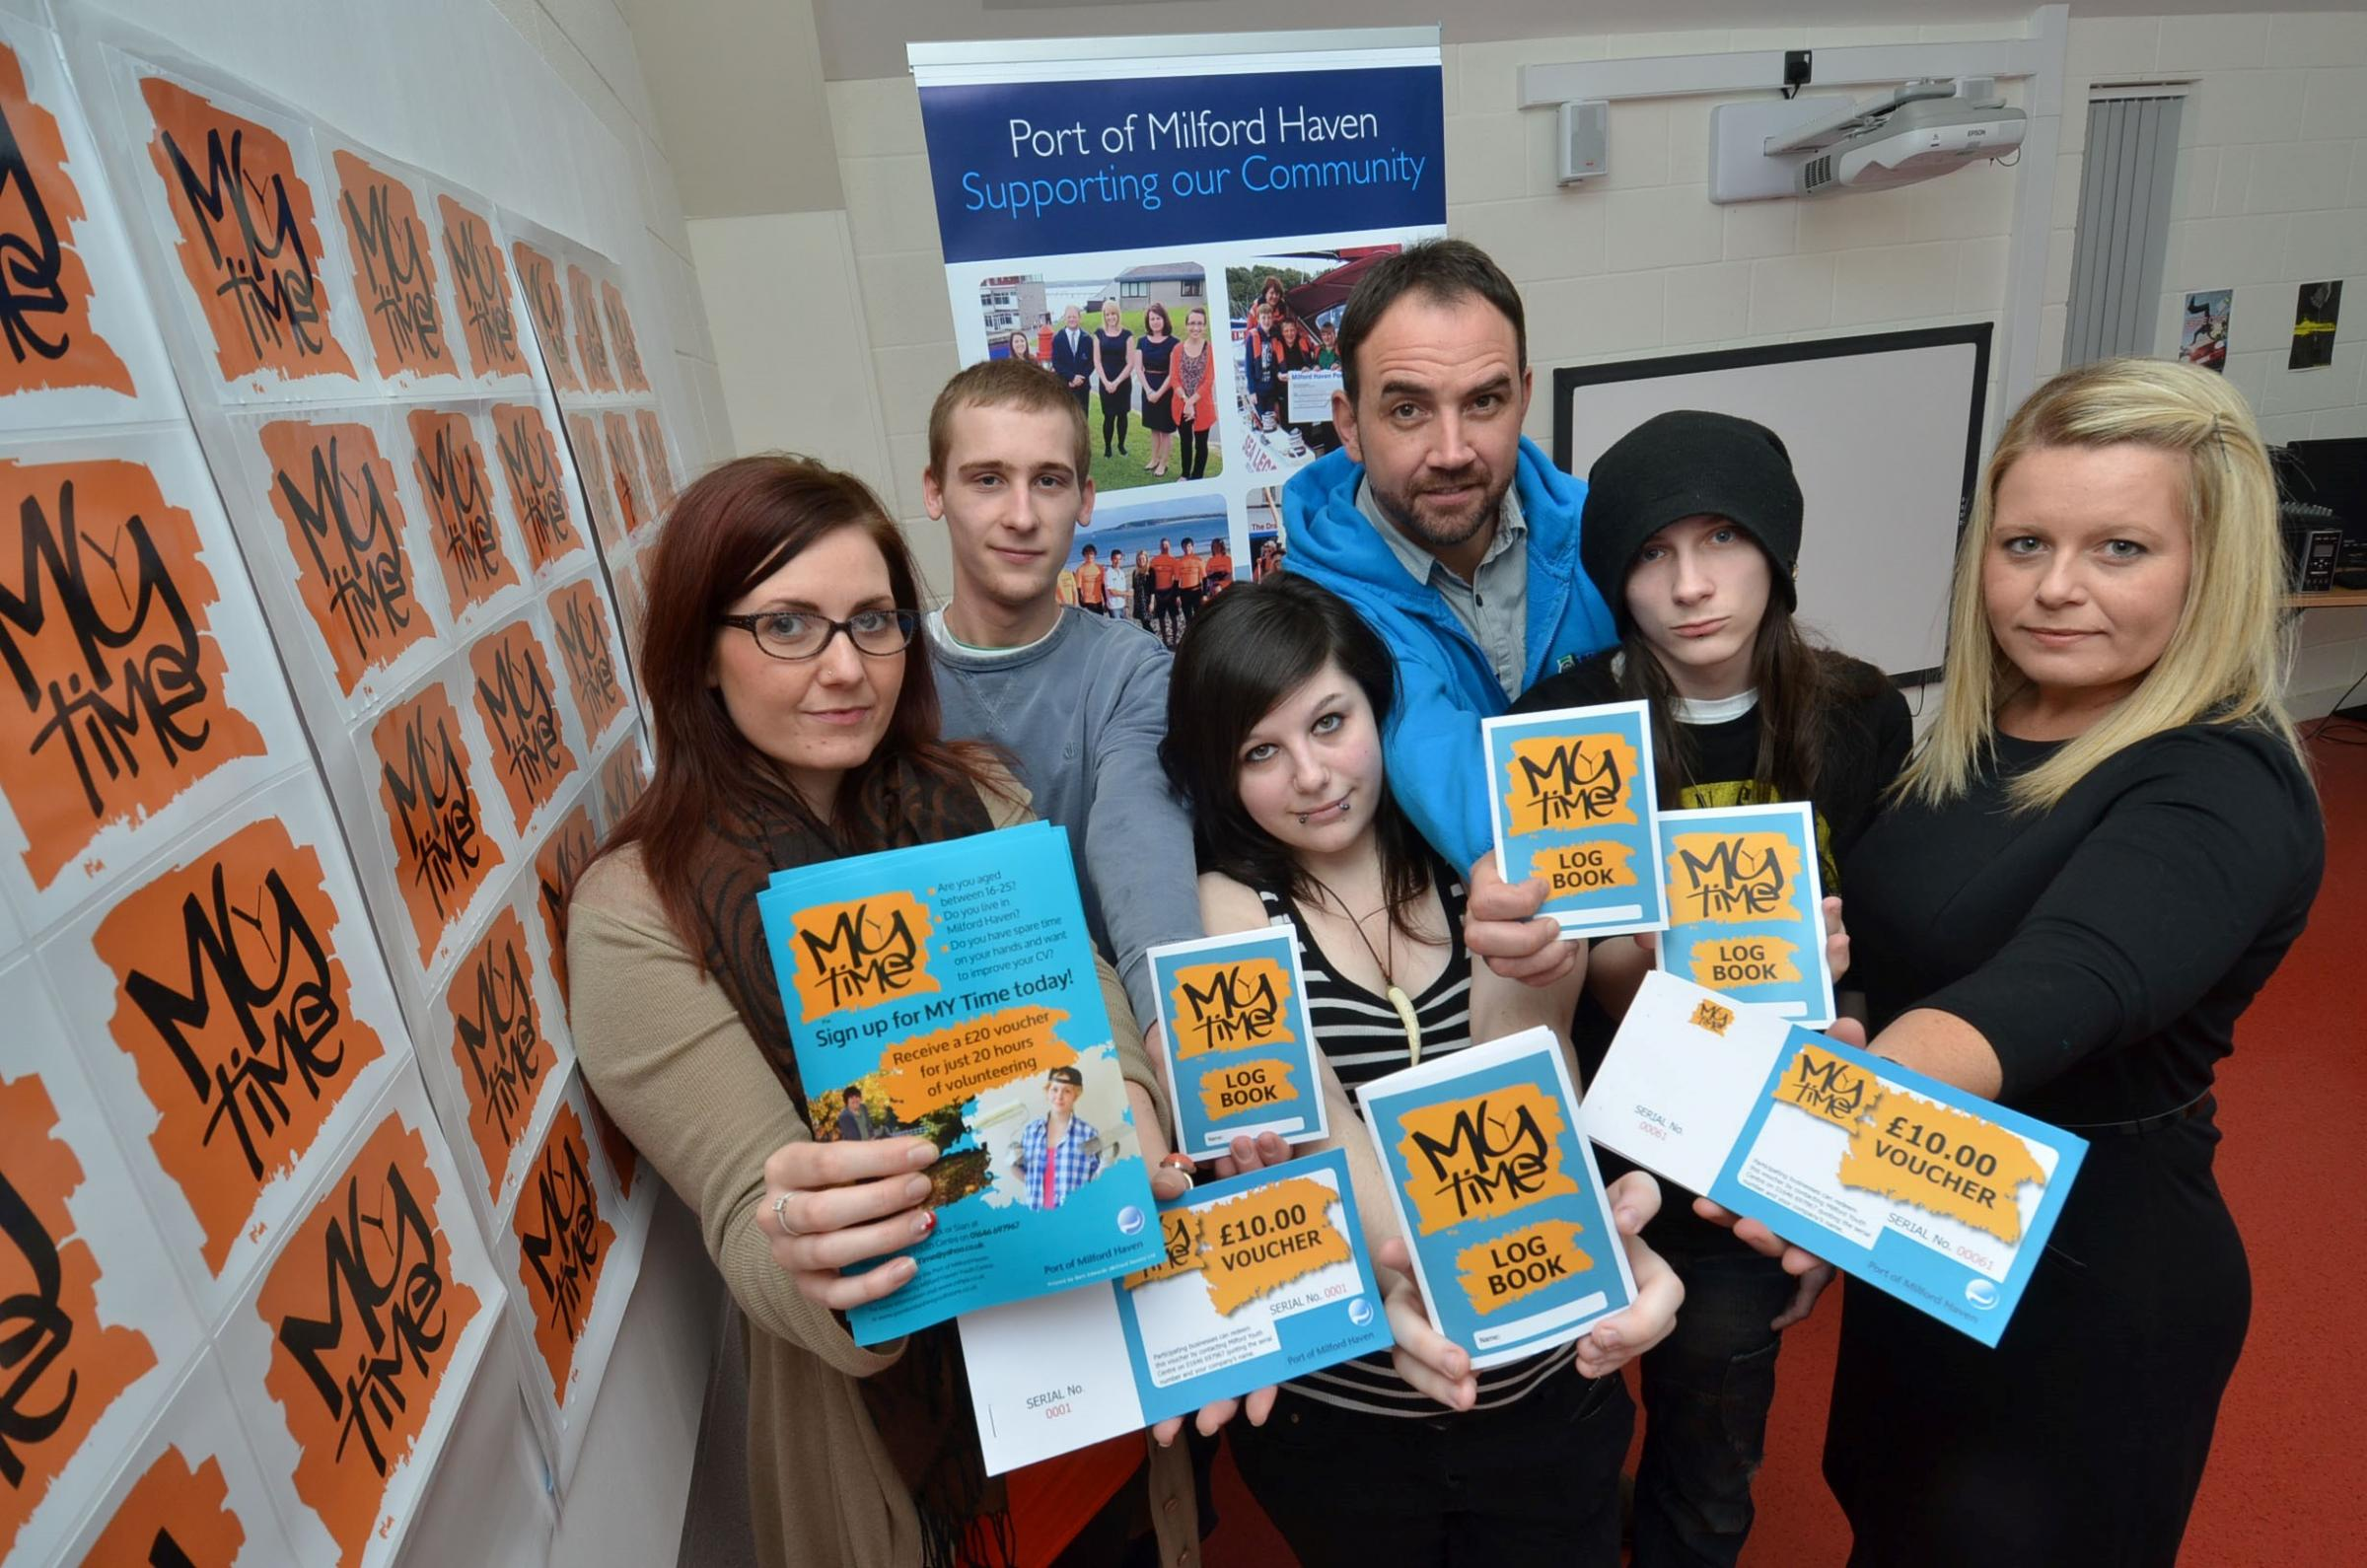 YOUTH MATTERS: Pictured at the launch of  MY  Time are (L-R): Sian Jones, Milford Youth Matters; Mike Tunstall & Crystal-Louise Rayner; Nick Hudd, Pembrokeshire Youth; Zak Phillips and Anna Malloy, Port of Milford Haven. (2841974)